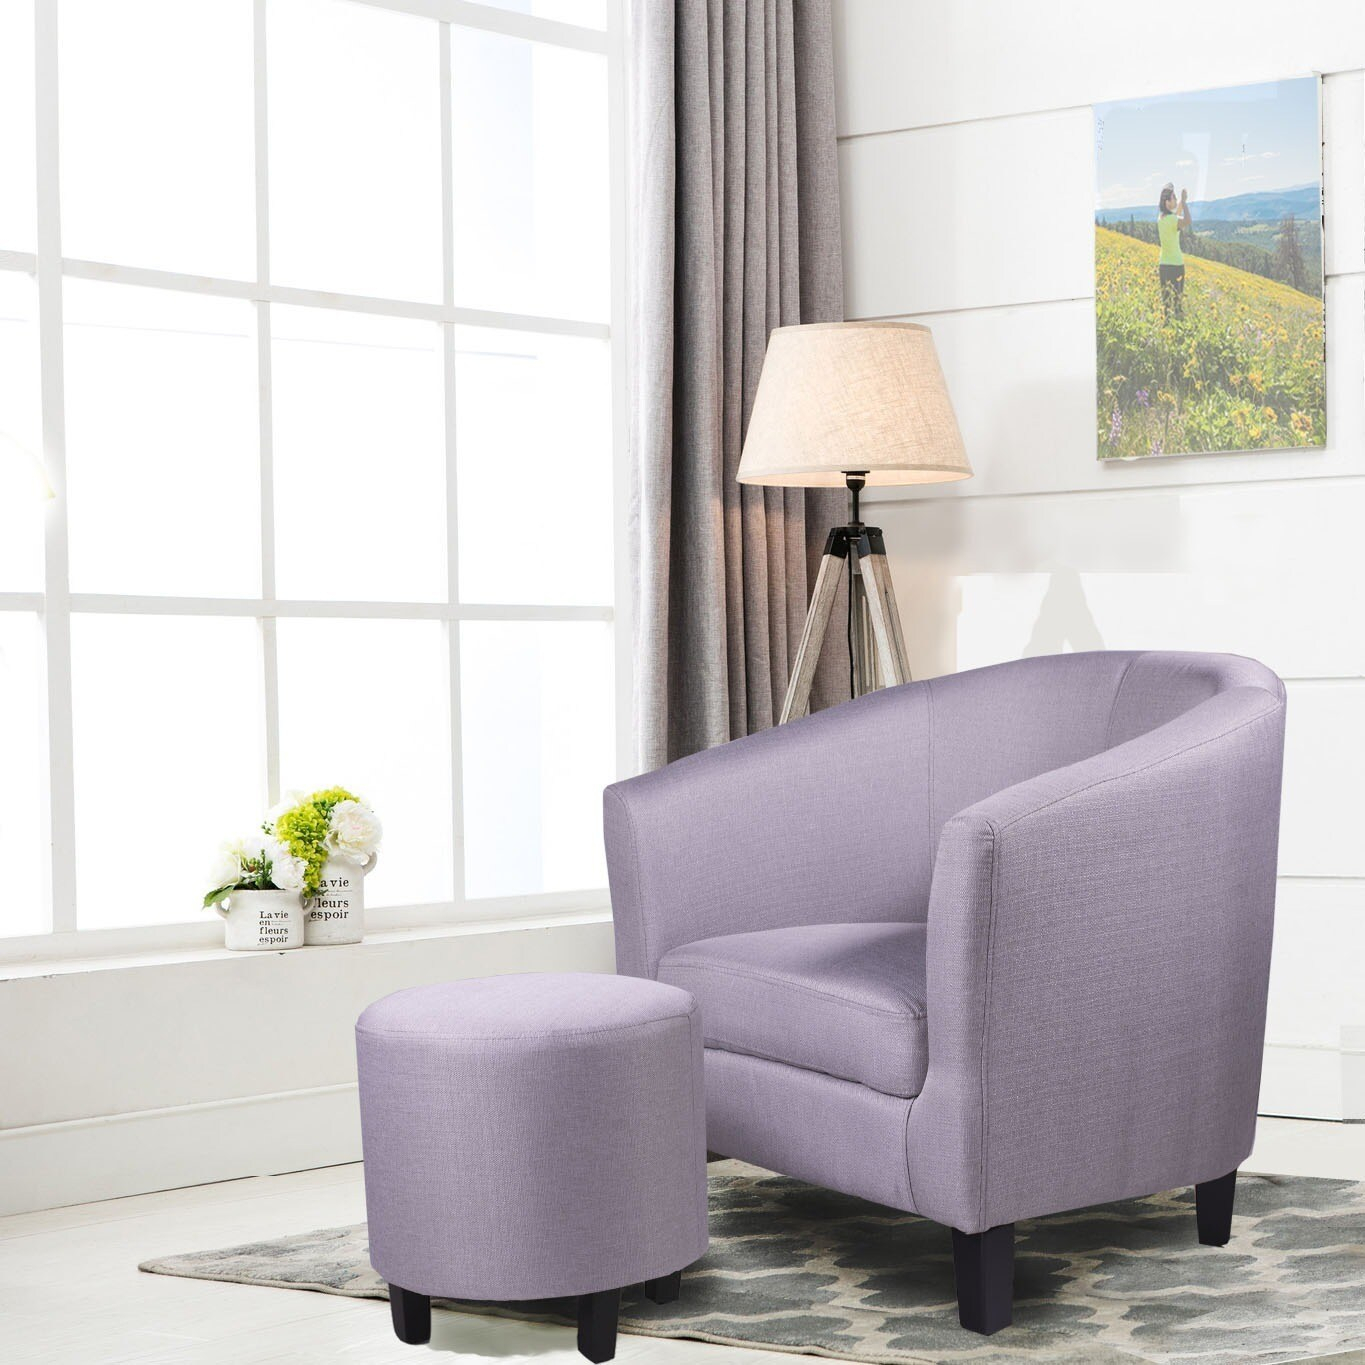 Ocean Bridge Furniture 7Am Collection Lavelle 7Am Barrel Chair And Ottoman Set, Beige/Grey/Silver Regarding Jazouli Linen Barrel Chairs And Ottoman (View 13 of 15)